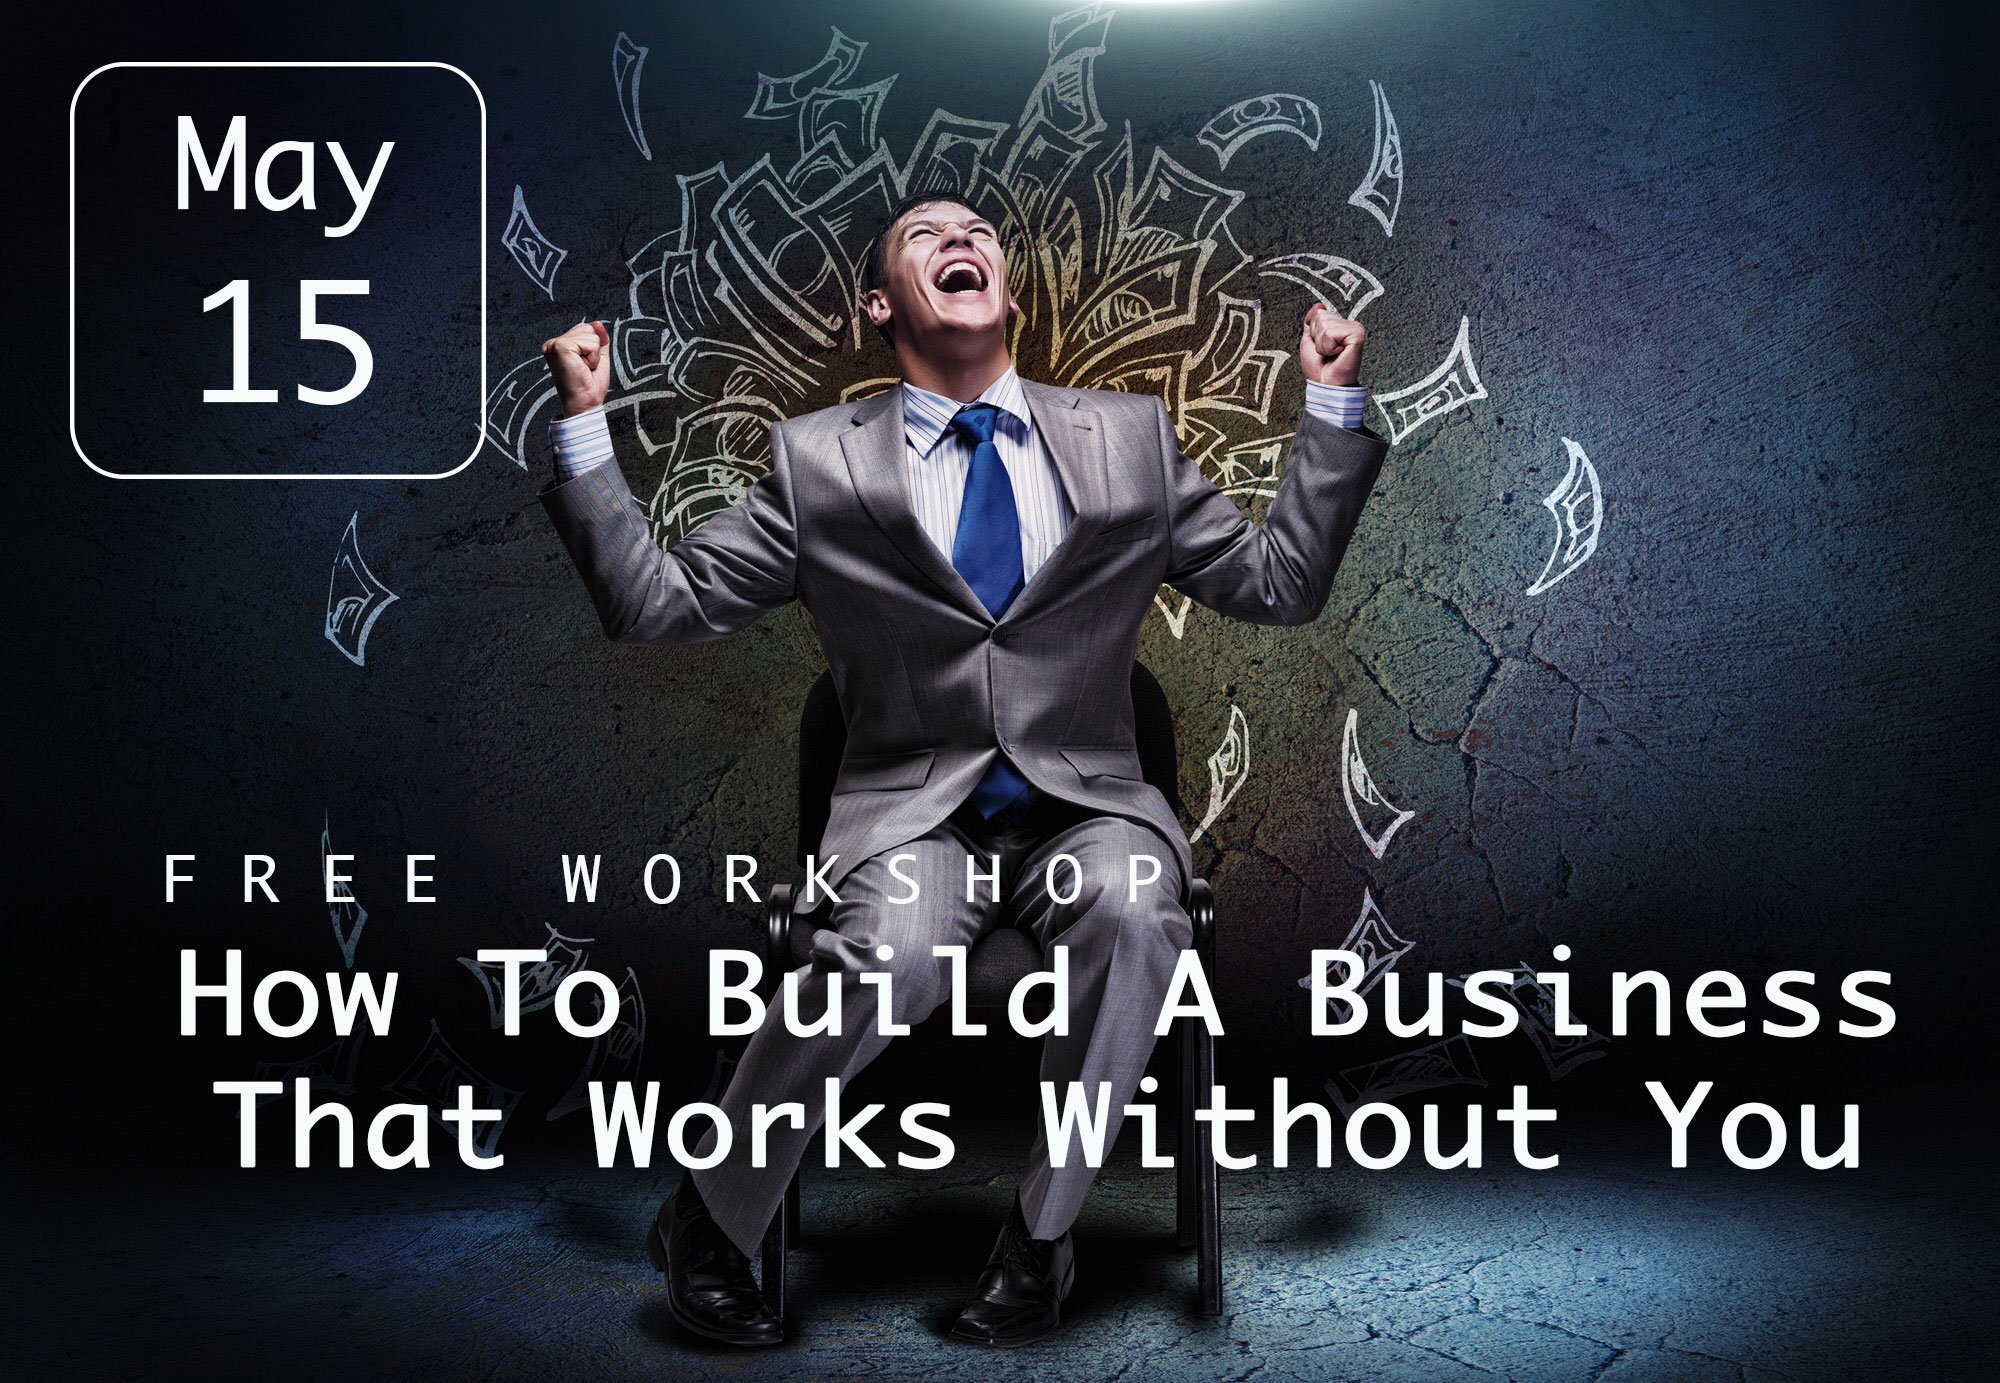 Free event in The Woodlands for business owners May 15